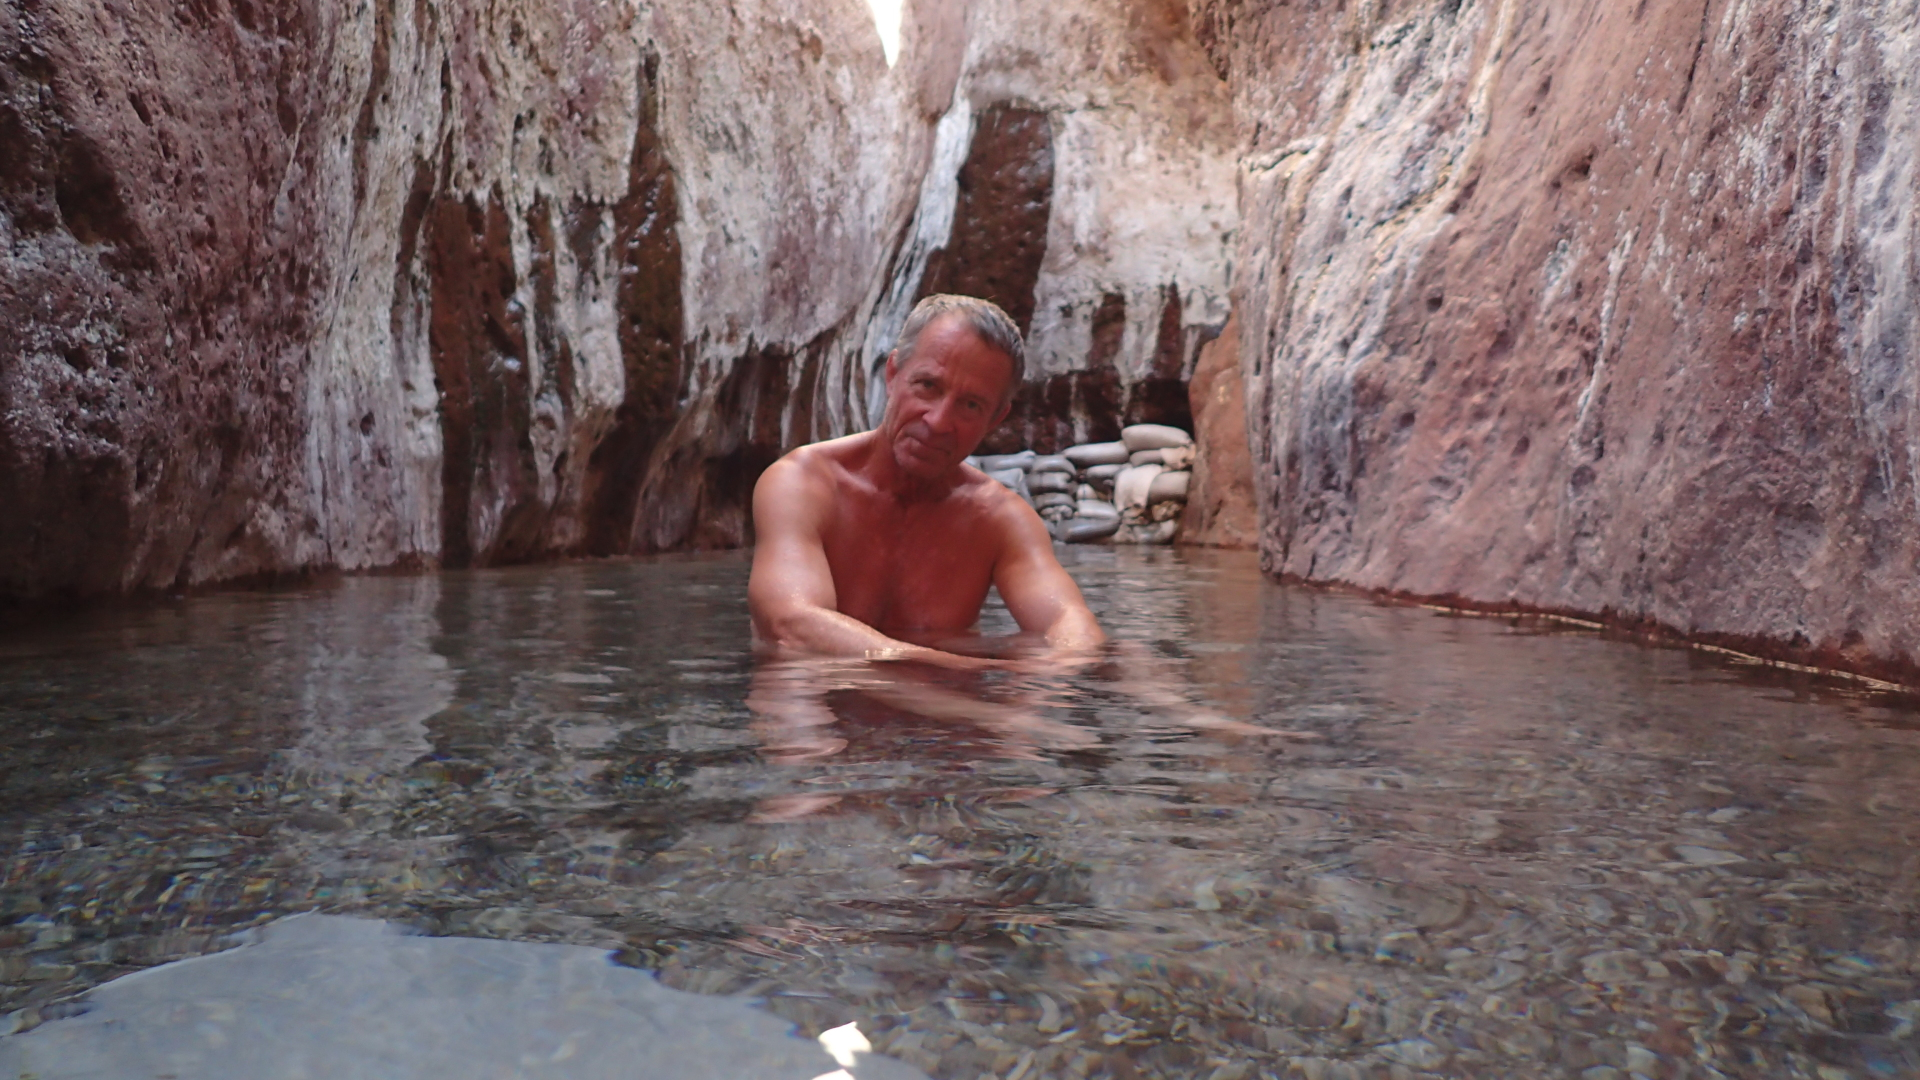 Robert Finlay soaking in the Arizona Hot Springs